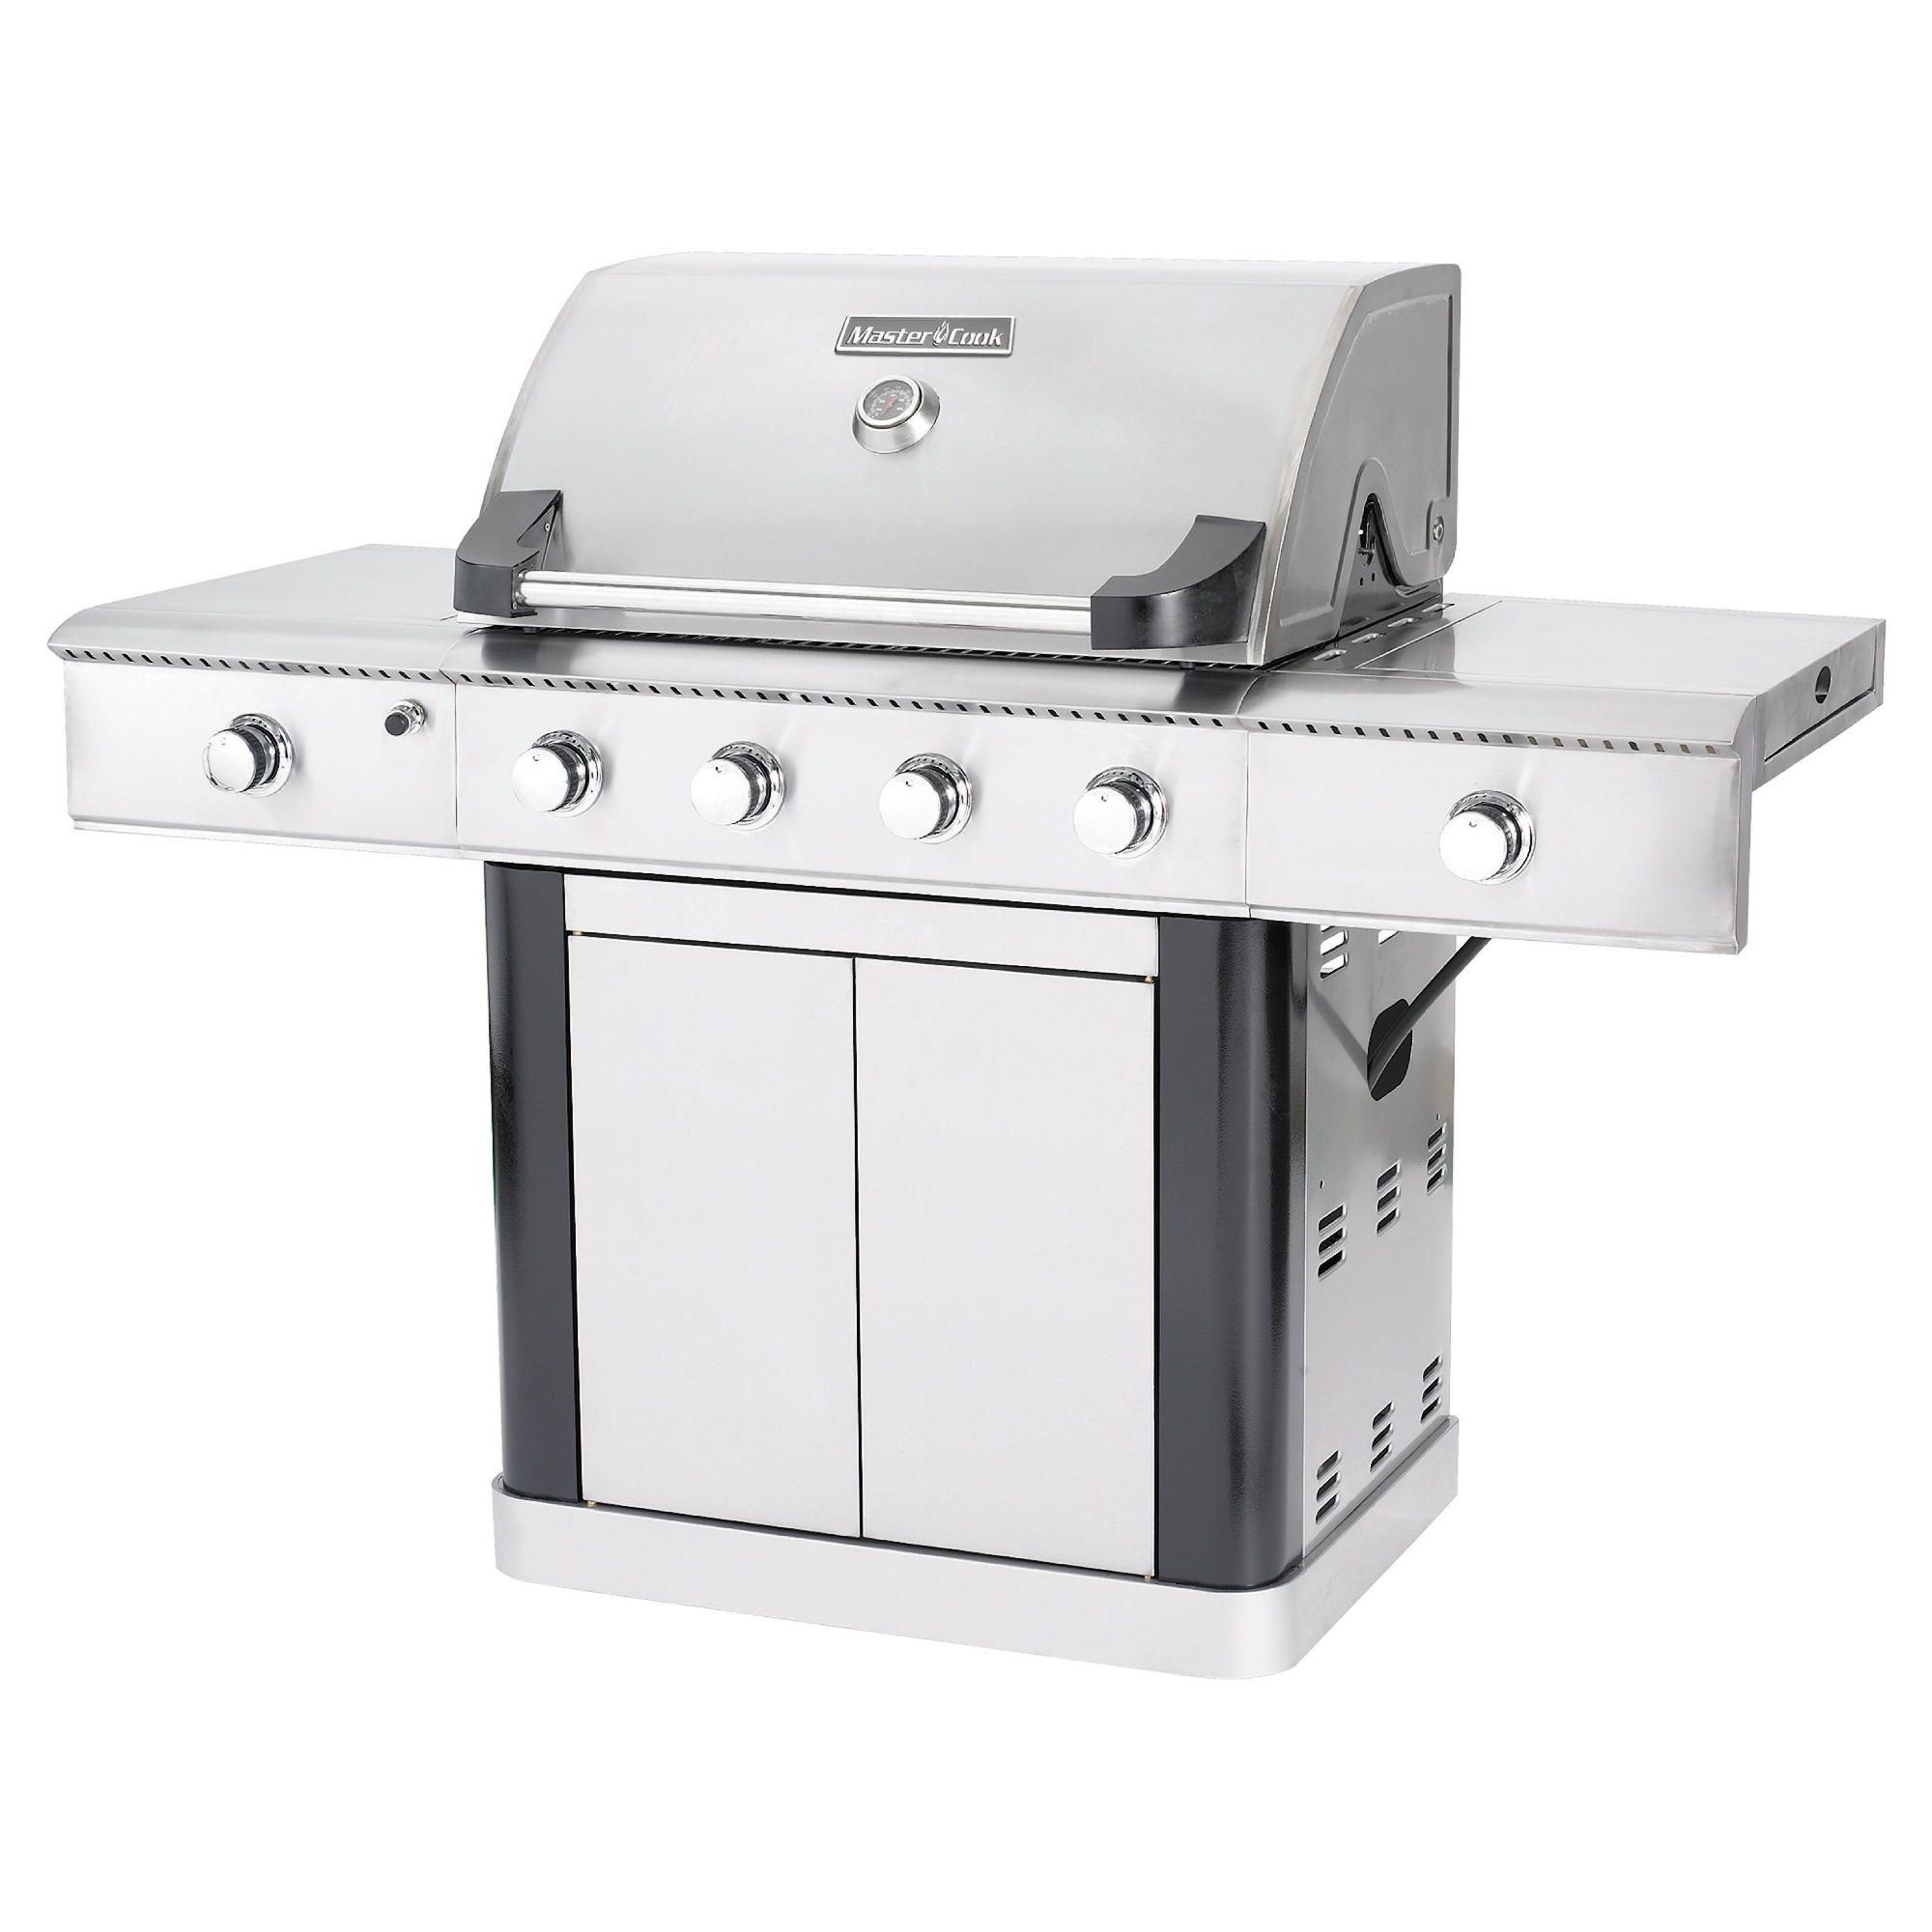 Mastercook 4 BURNER GAS GRILL S/S with black trim at Tesco Direct